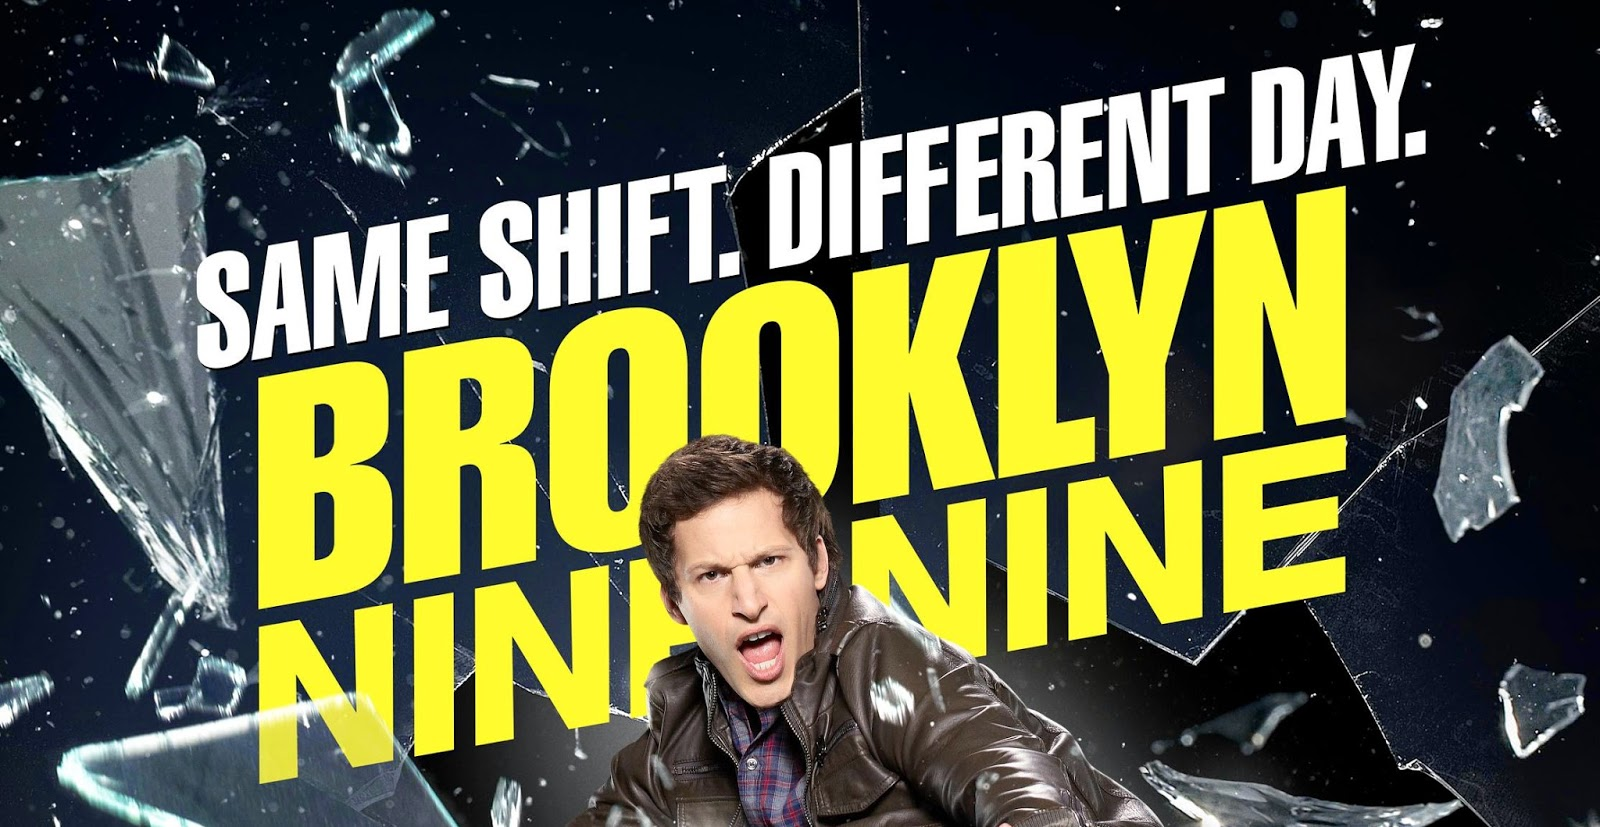 Brooklyn Nine-Nine - Season 2 Poster